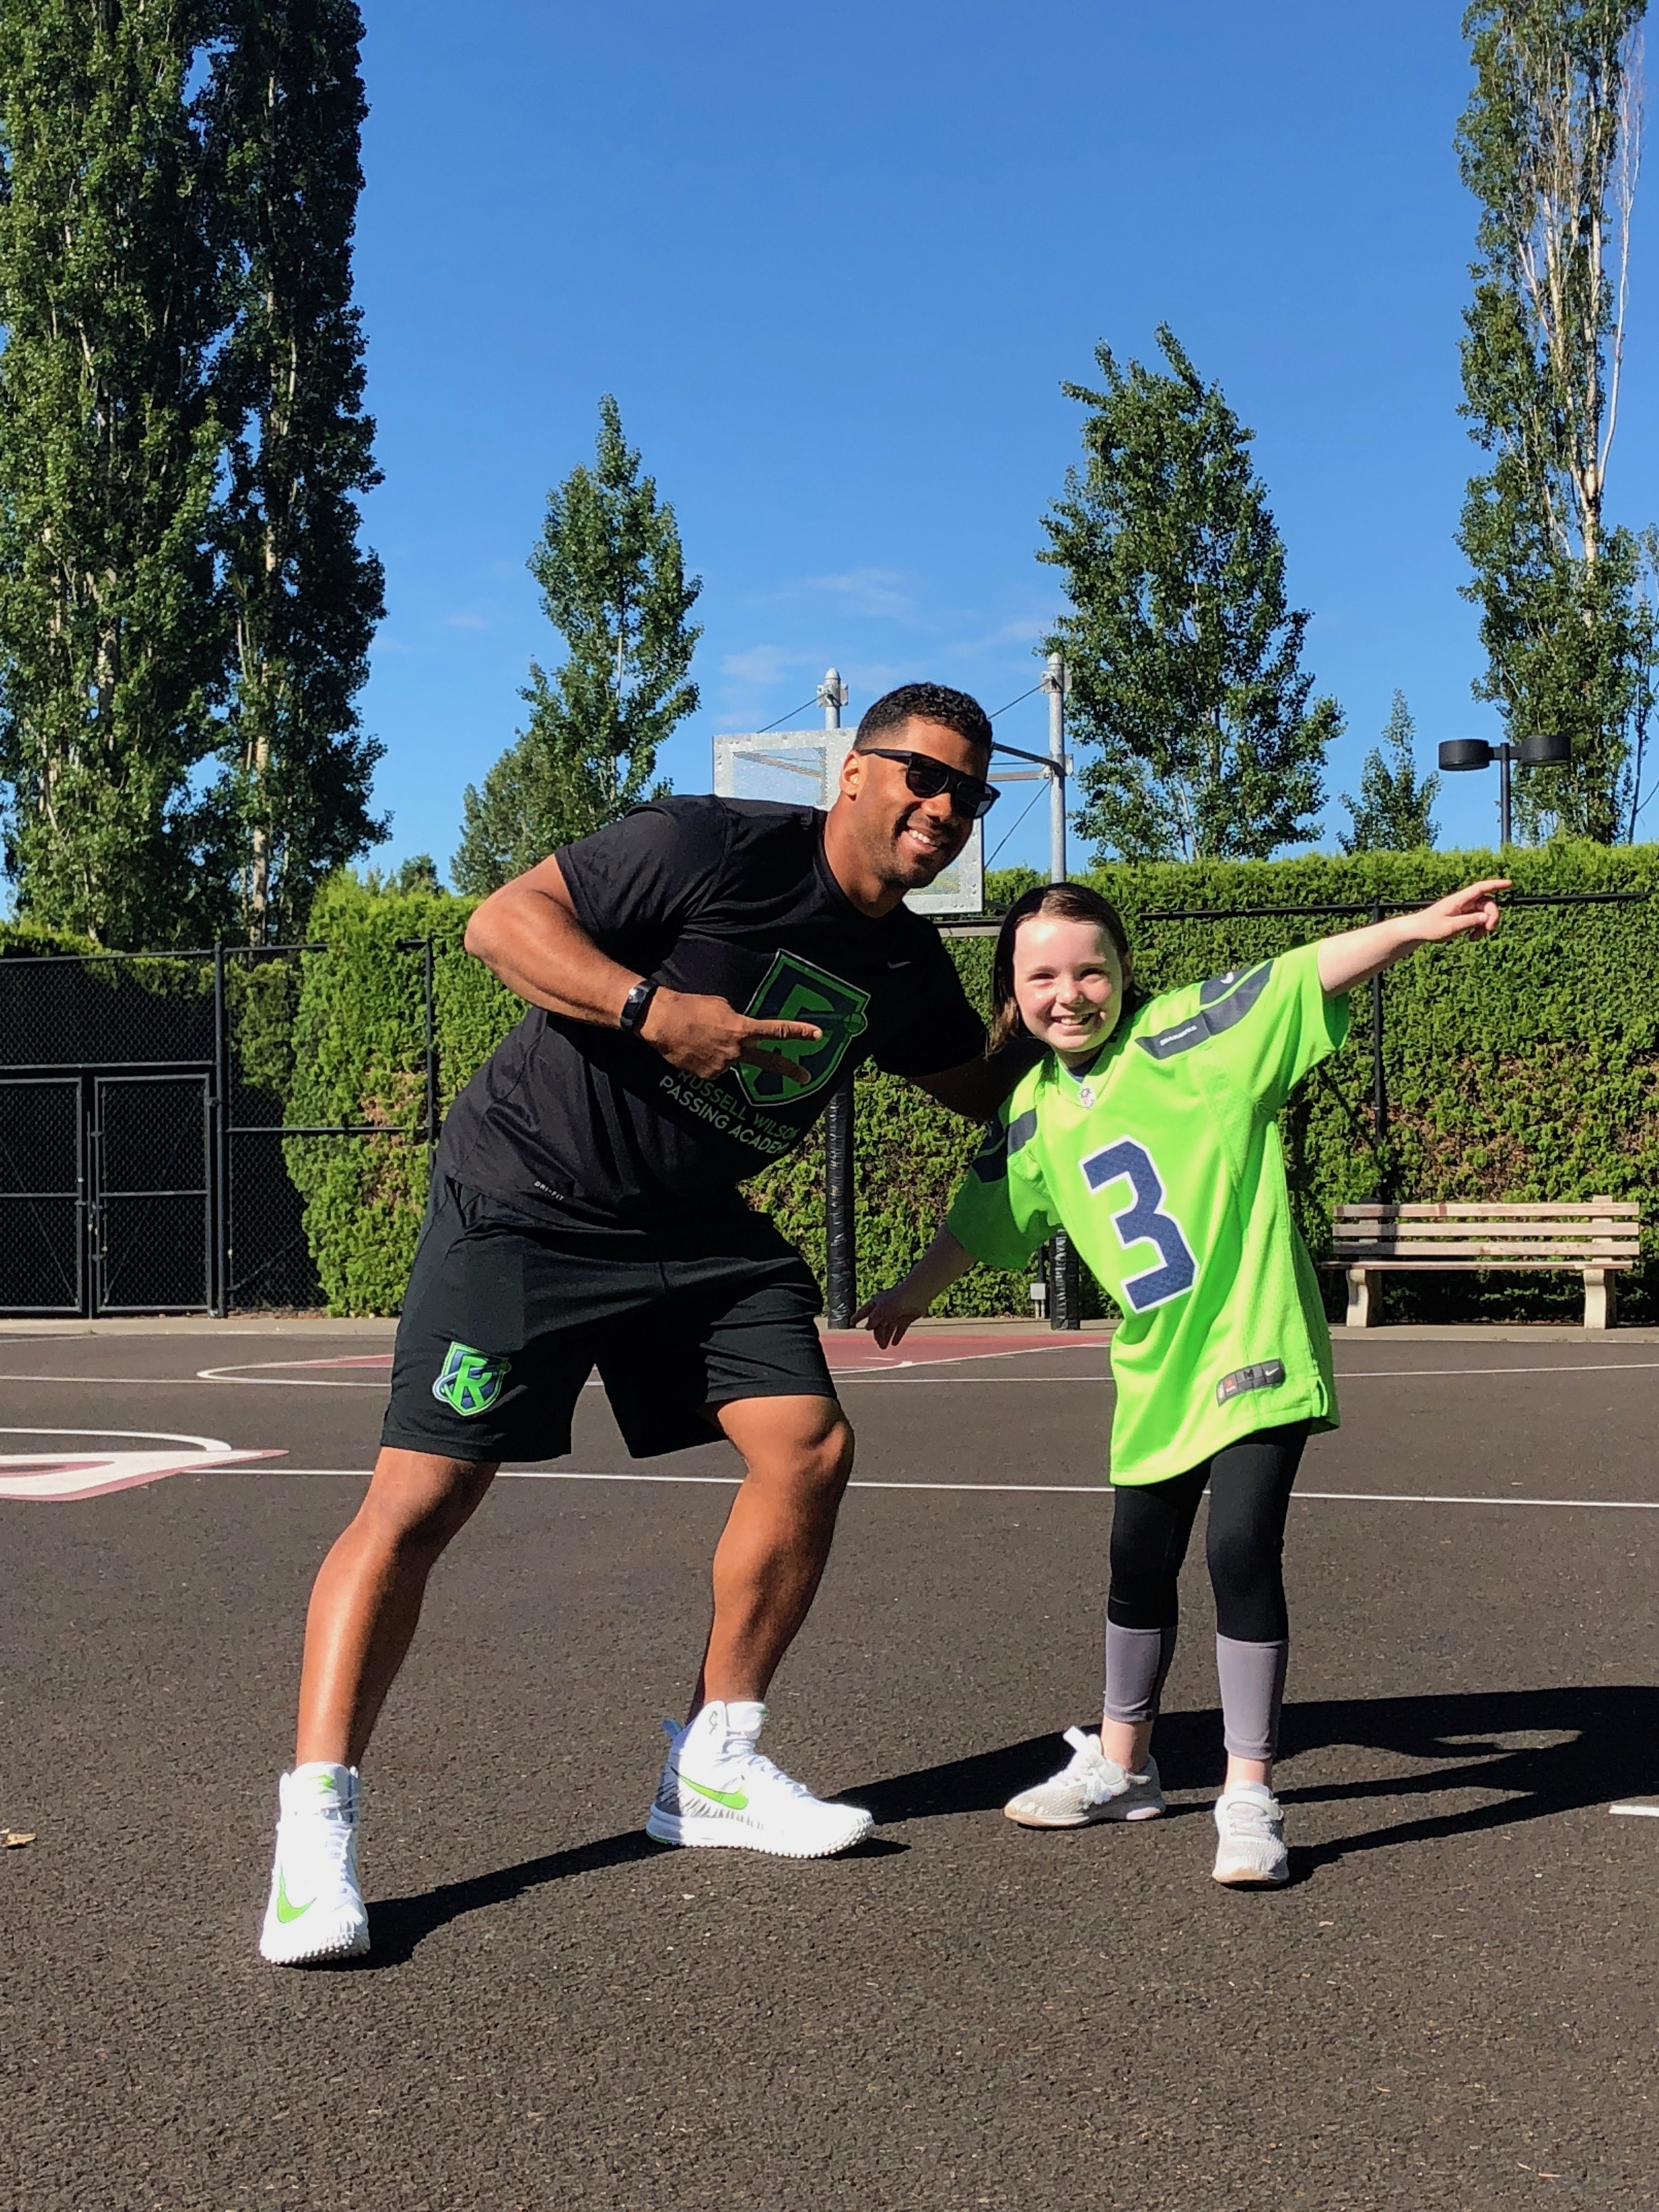 27d291e02d25 Ten-year-old cystic fibrosis patient Chloe got to meet one of her favorite  athletes